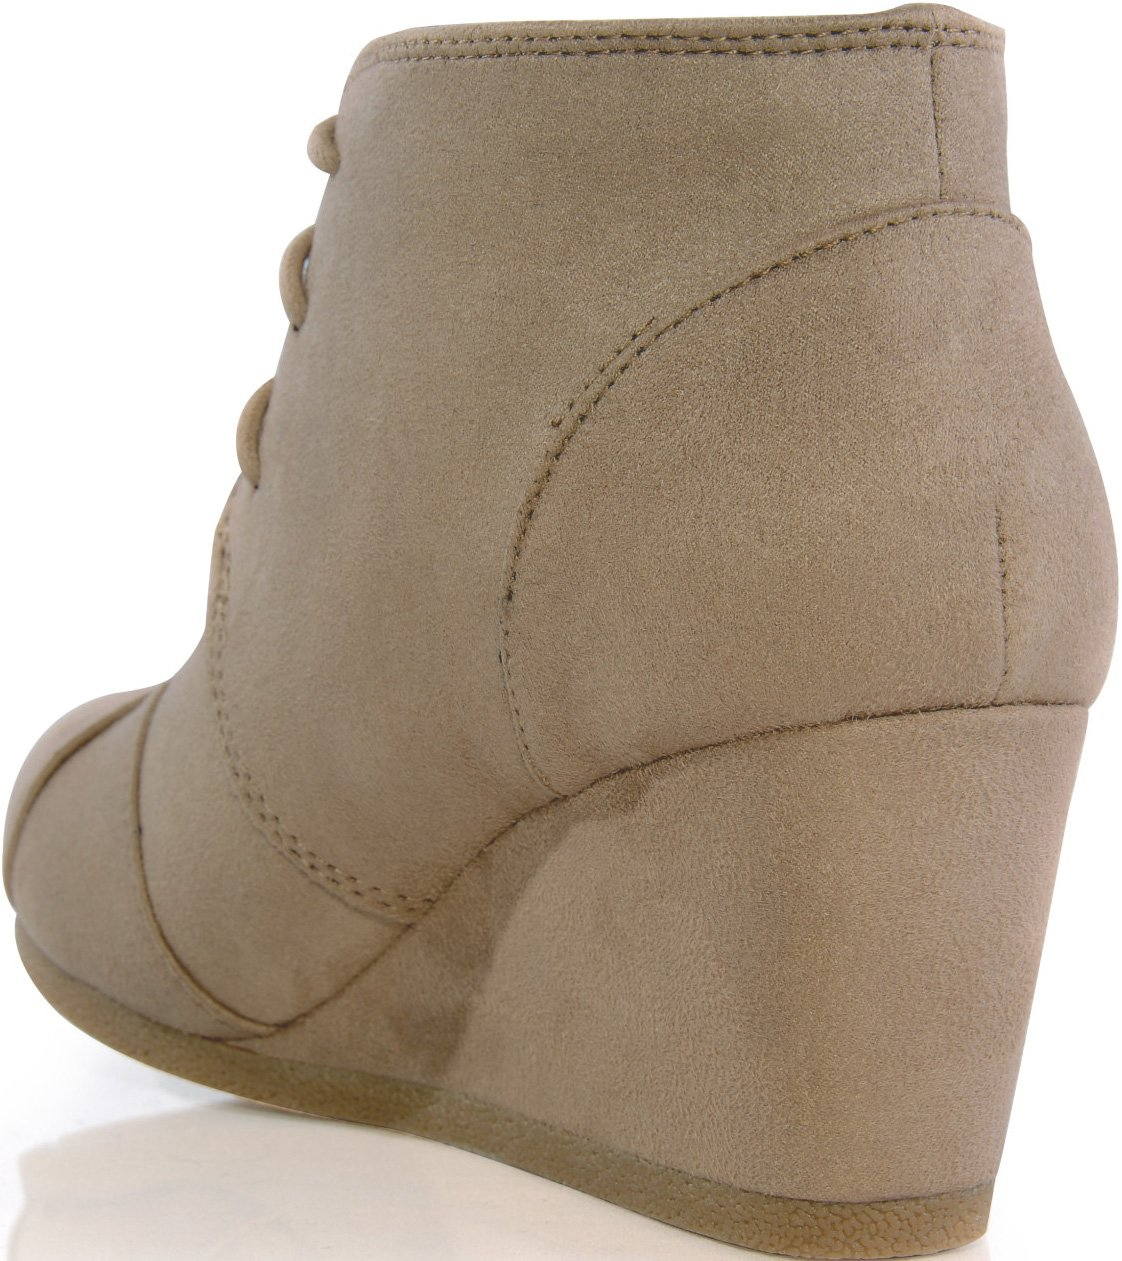 MARCOREPUBLIC Galaxy Womens Wedge Boots - (Taupe) - 10 by MARCOREPUBLIC (Image #5)